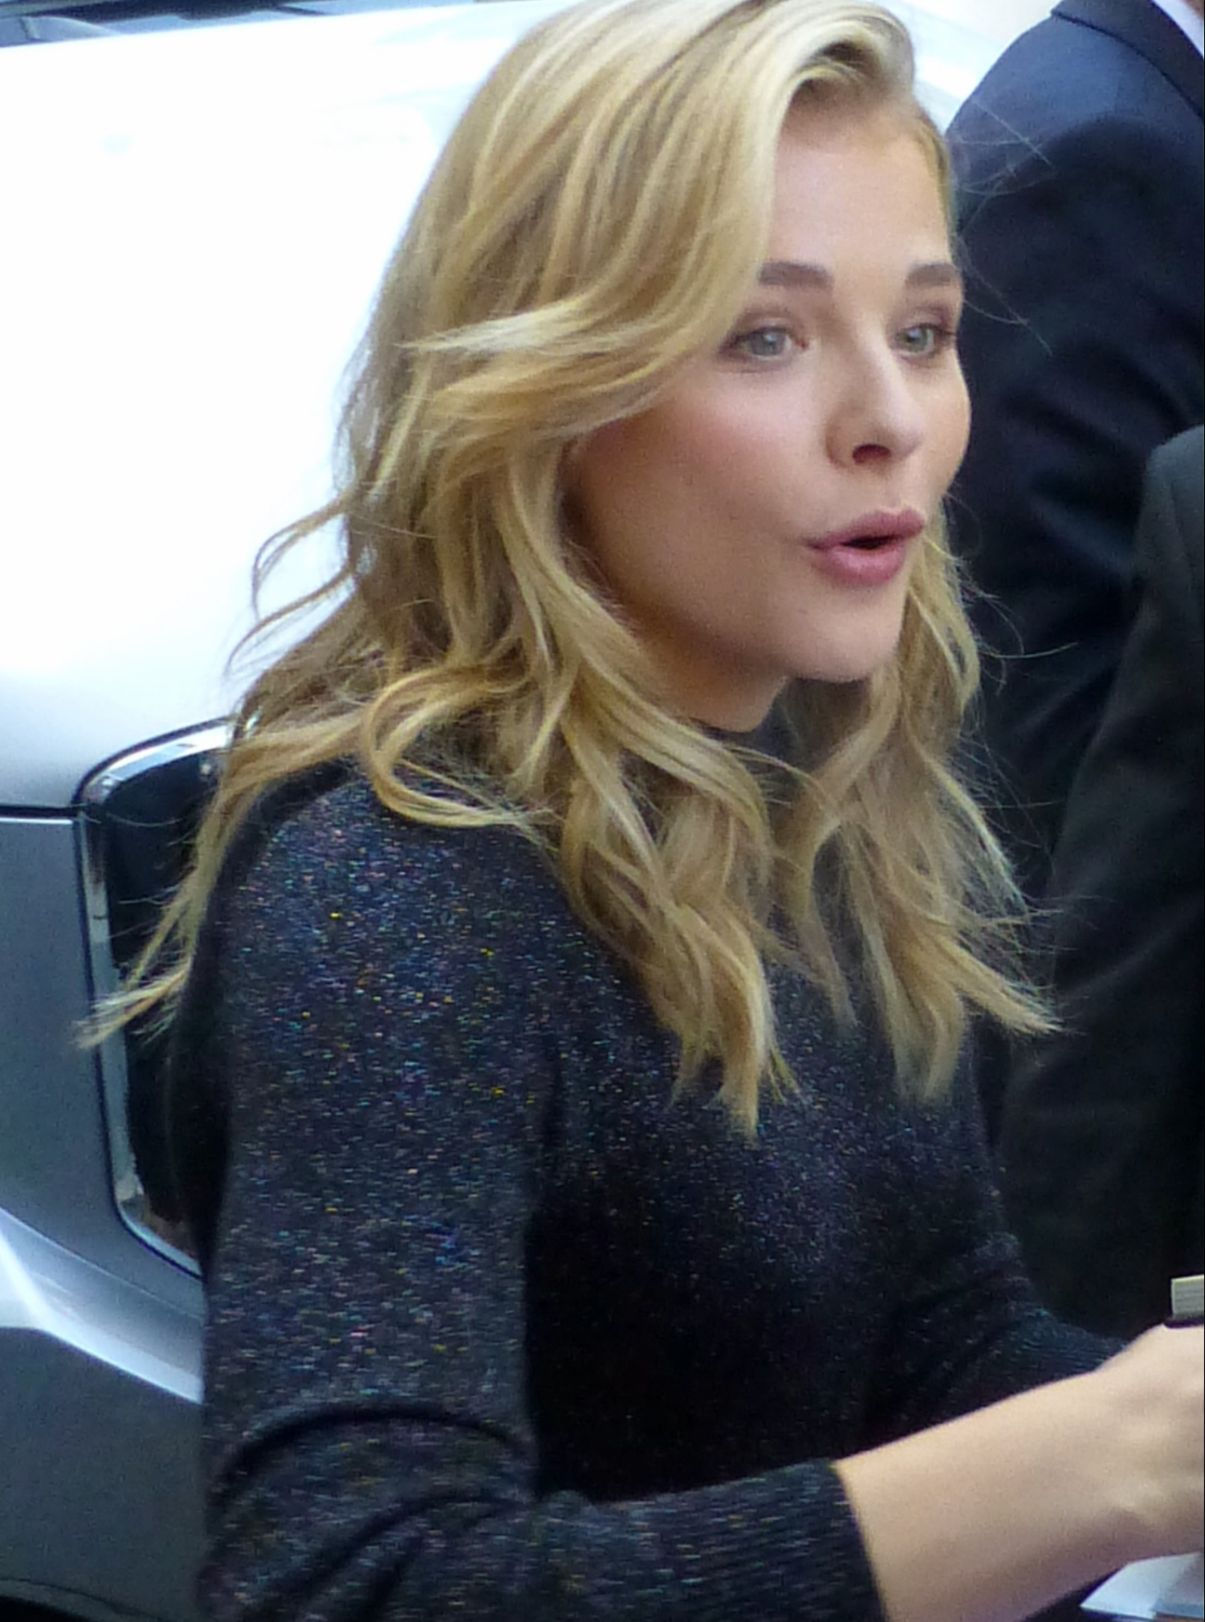 Photo of Chloë Grace Moretz: American actress and model